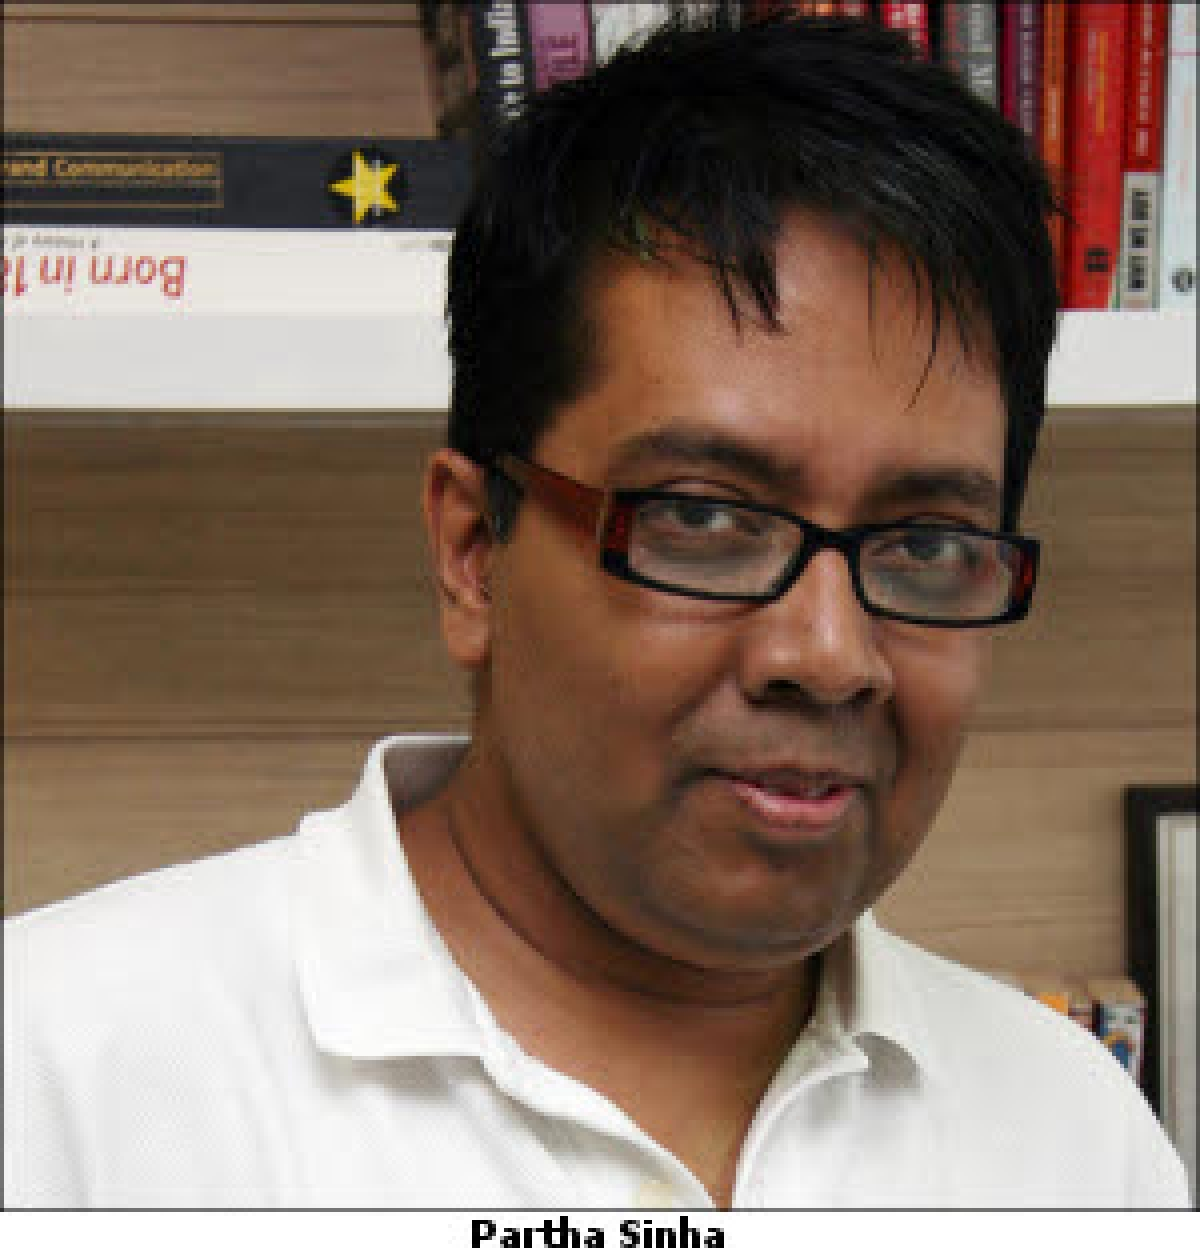 Partha Sinha to join McCann India as vice chairman and MD